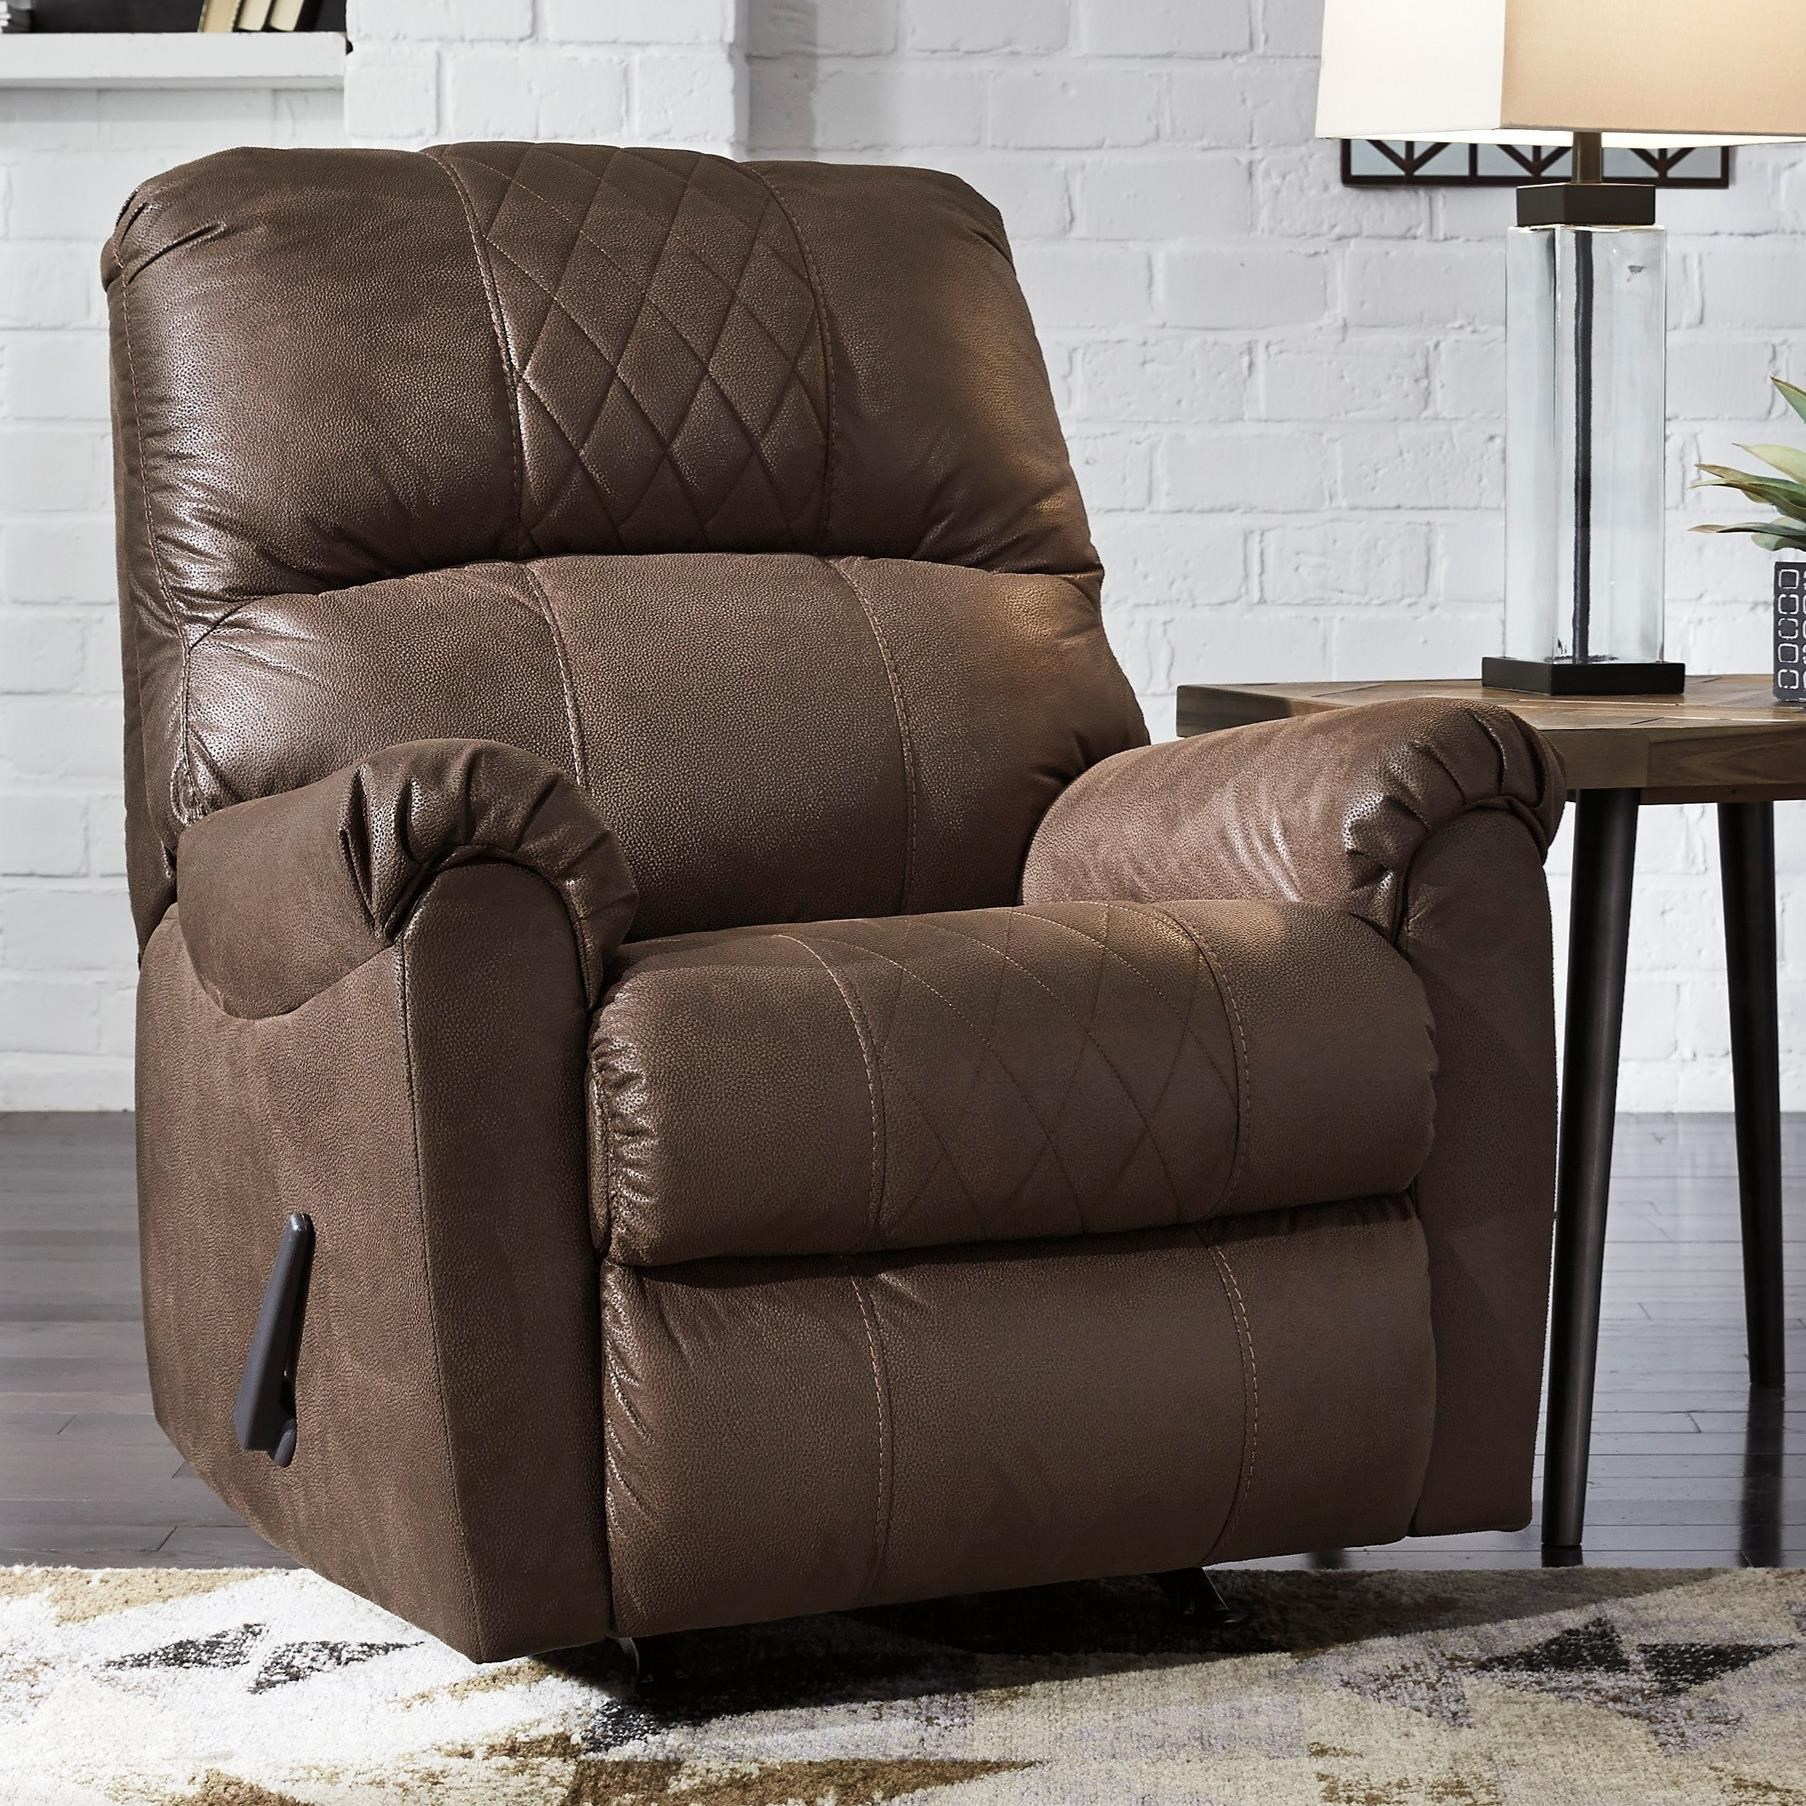 Narzole Recliner with Rocker Base by Benchcraft at Fisher Home Furnishings